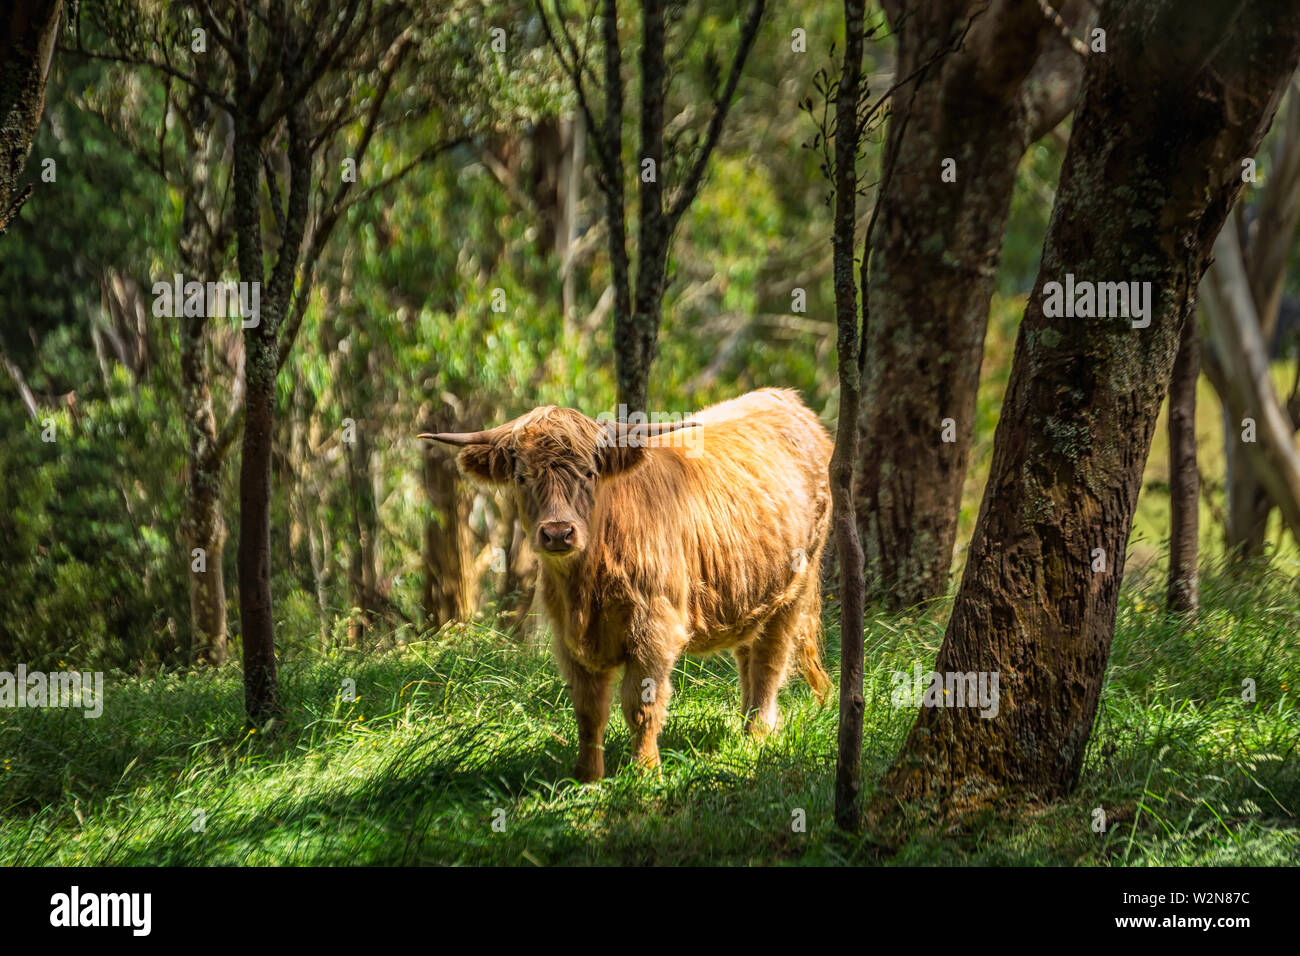 Scottish cow in a green meadow forest in the background in the Southern Scenic Route, New Zealand. - Stock Image